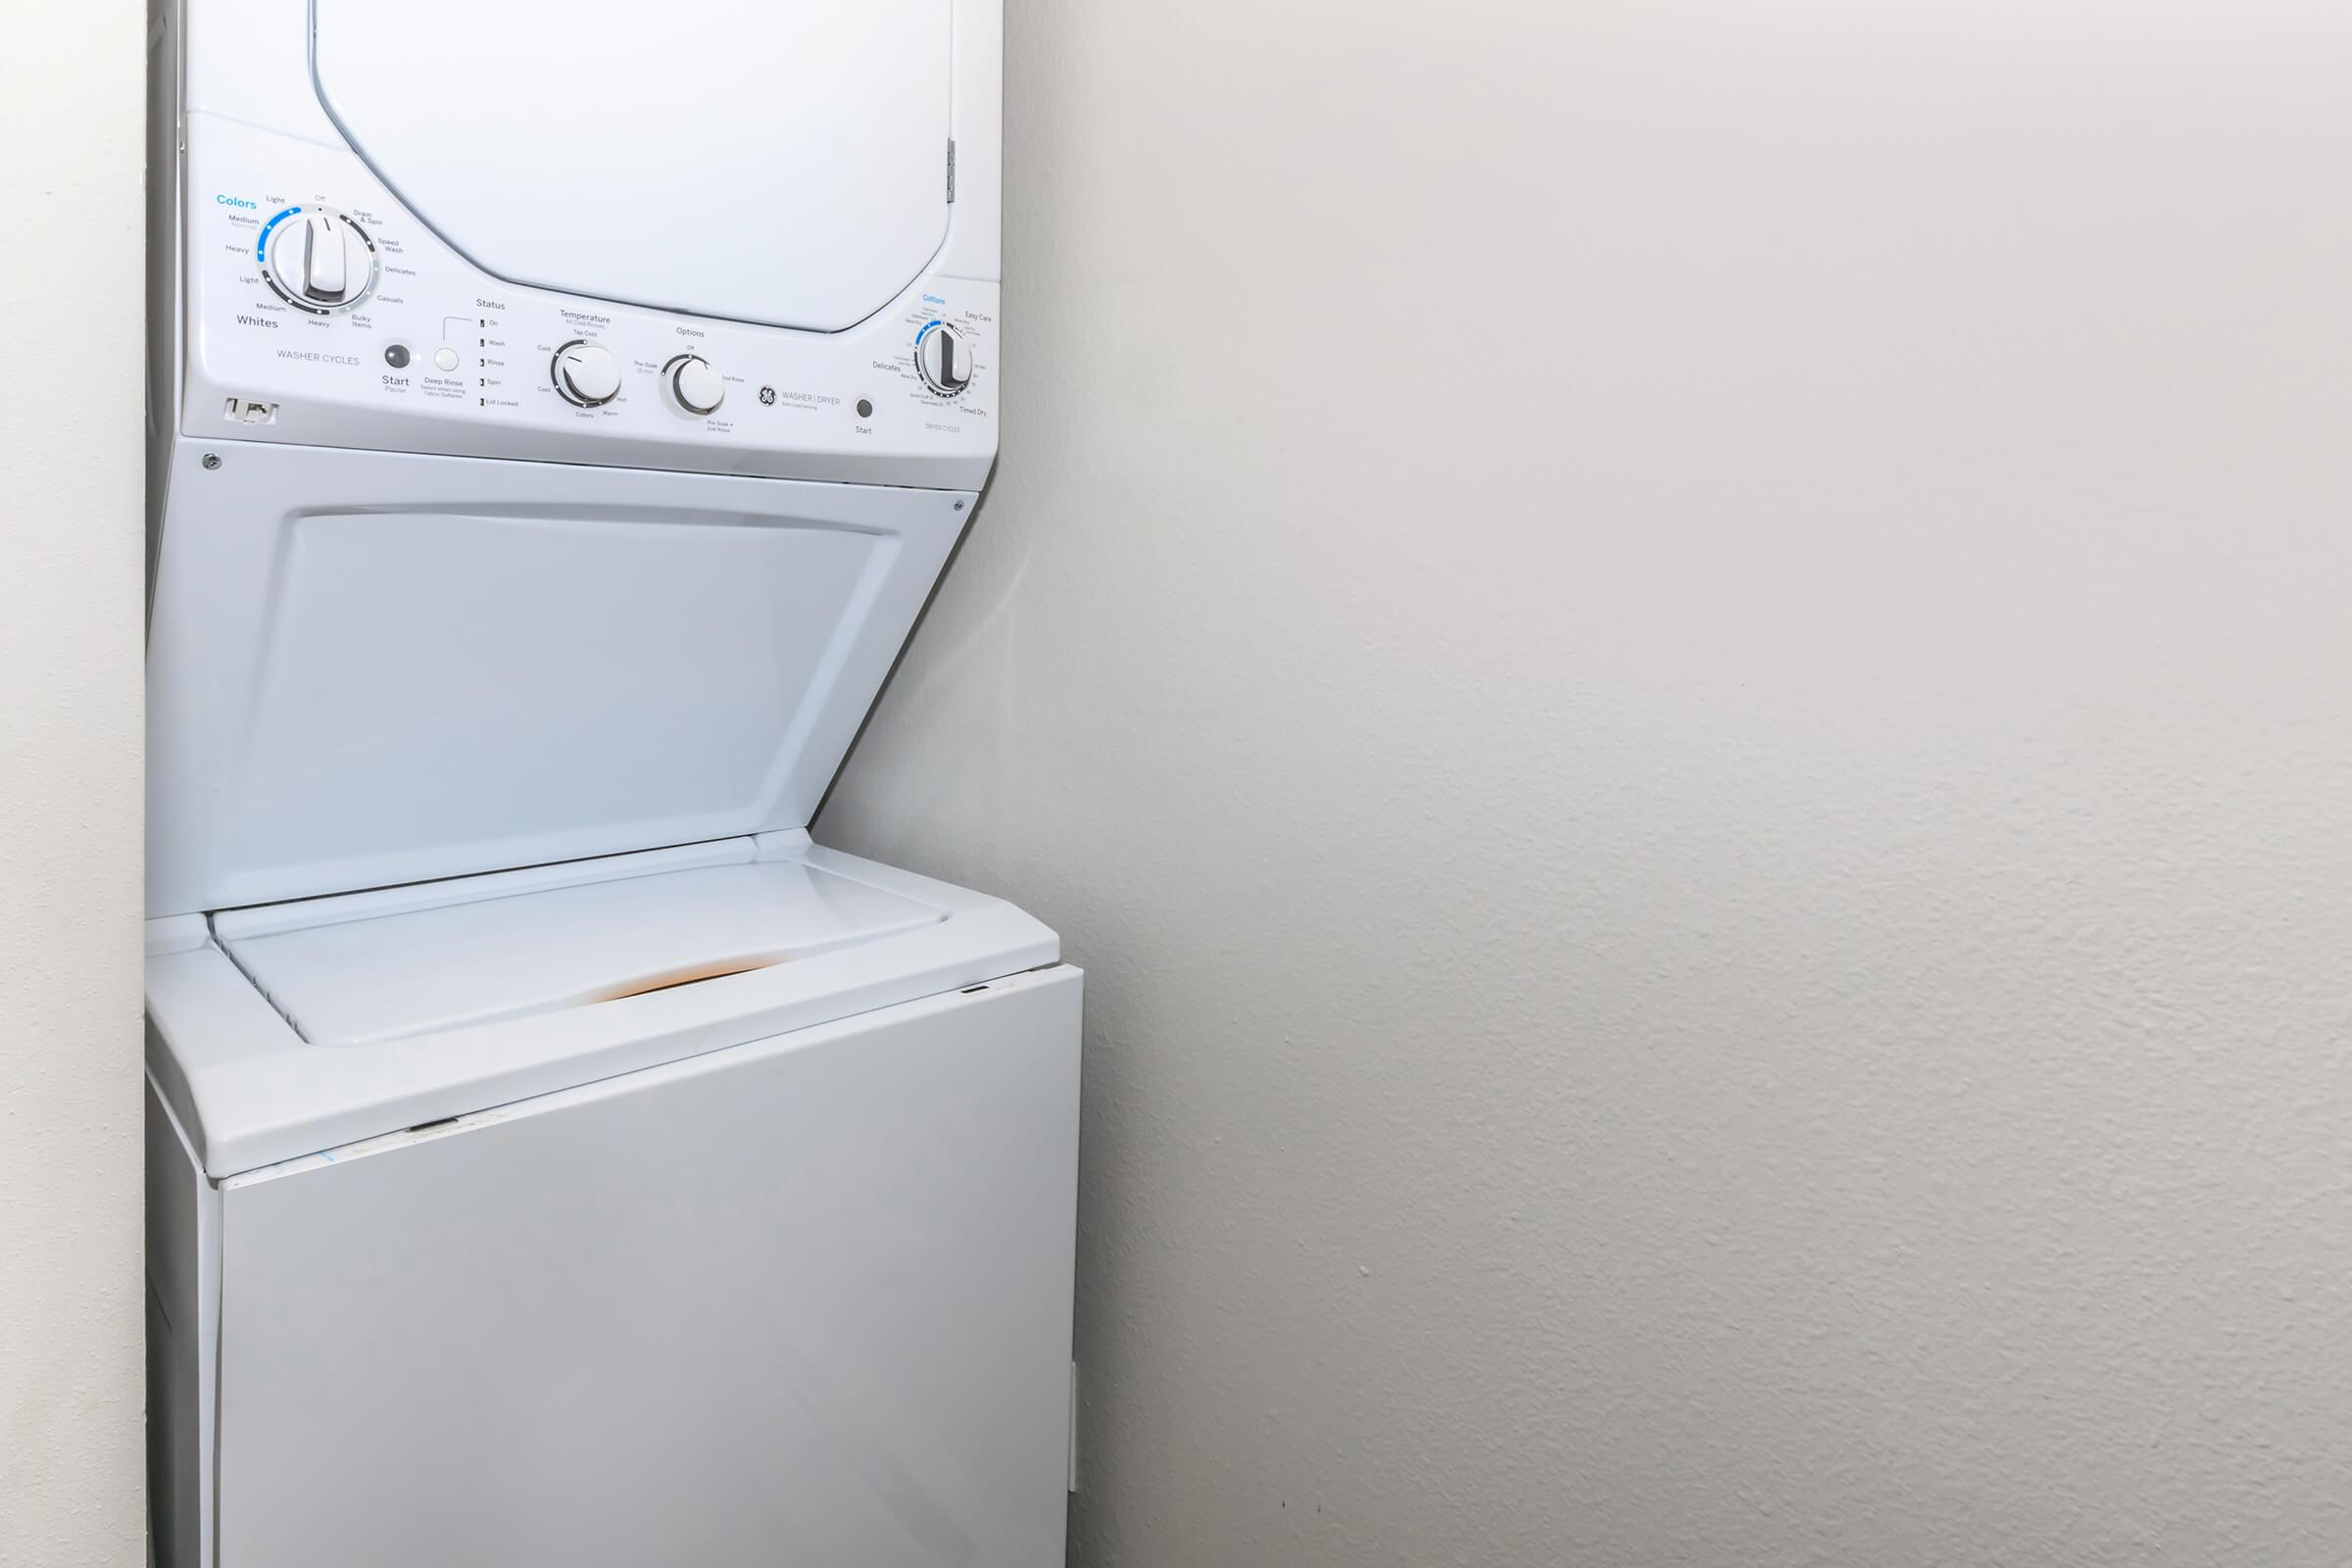 a white microwave oven sitting on top of a refrigerator